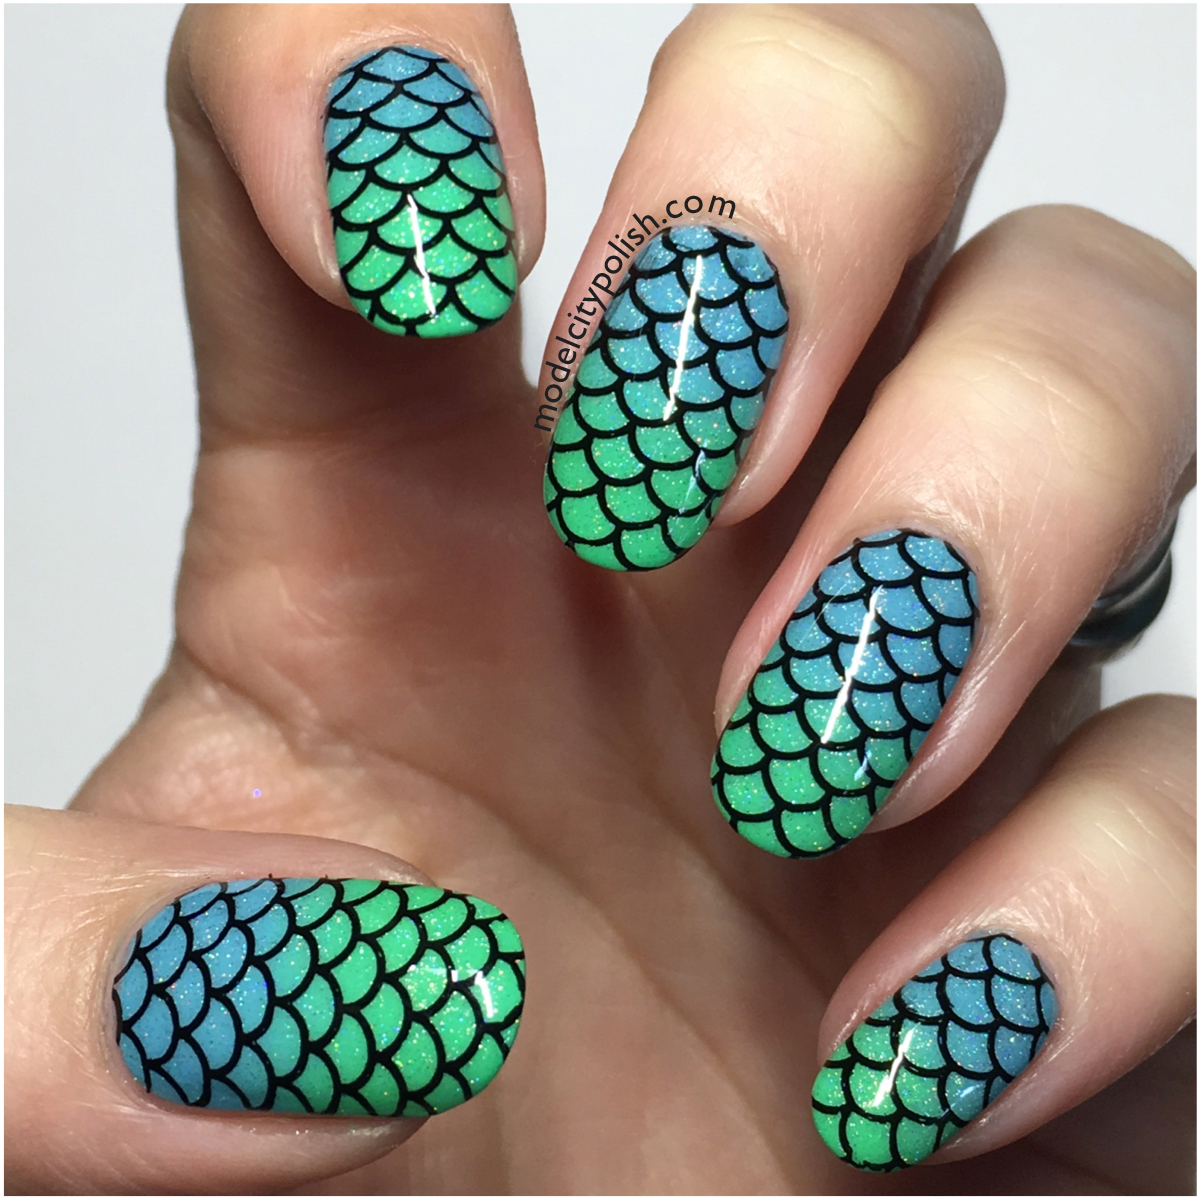 China Glaze Mermaid 3